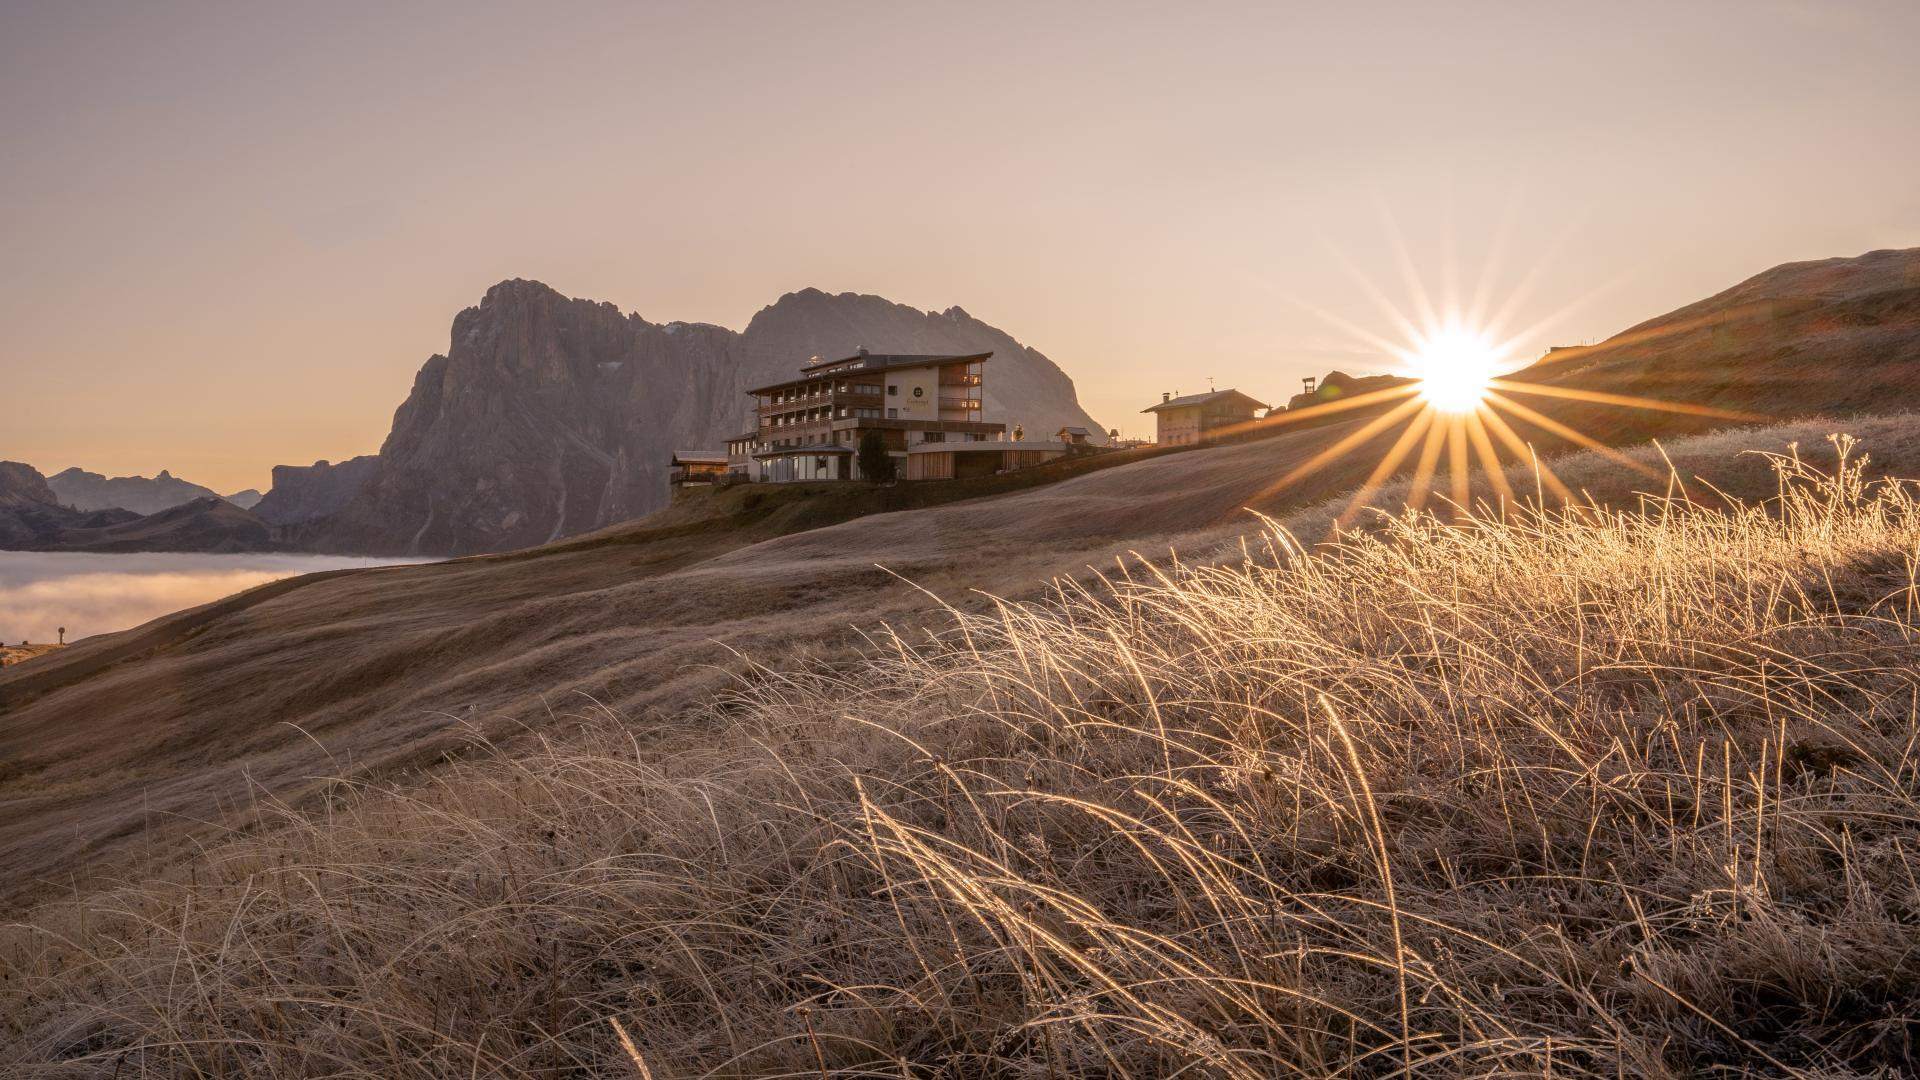 hotel-goldknopf-seiser-alm-herbst-sonnenaufgang-11